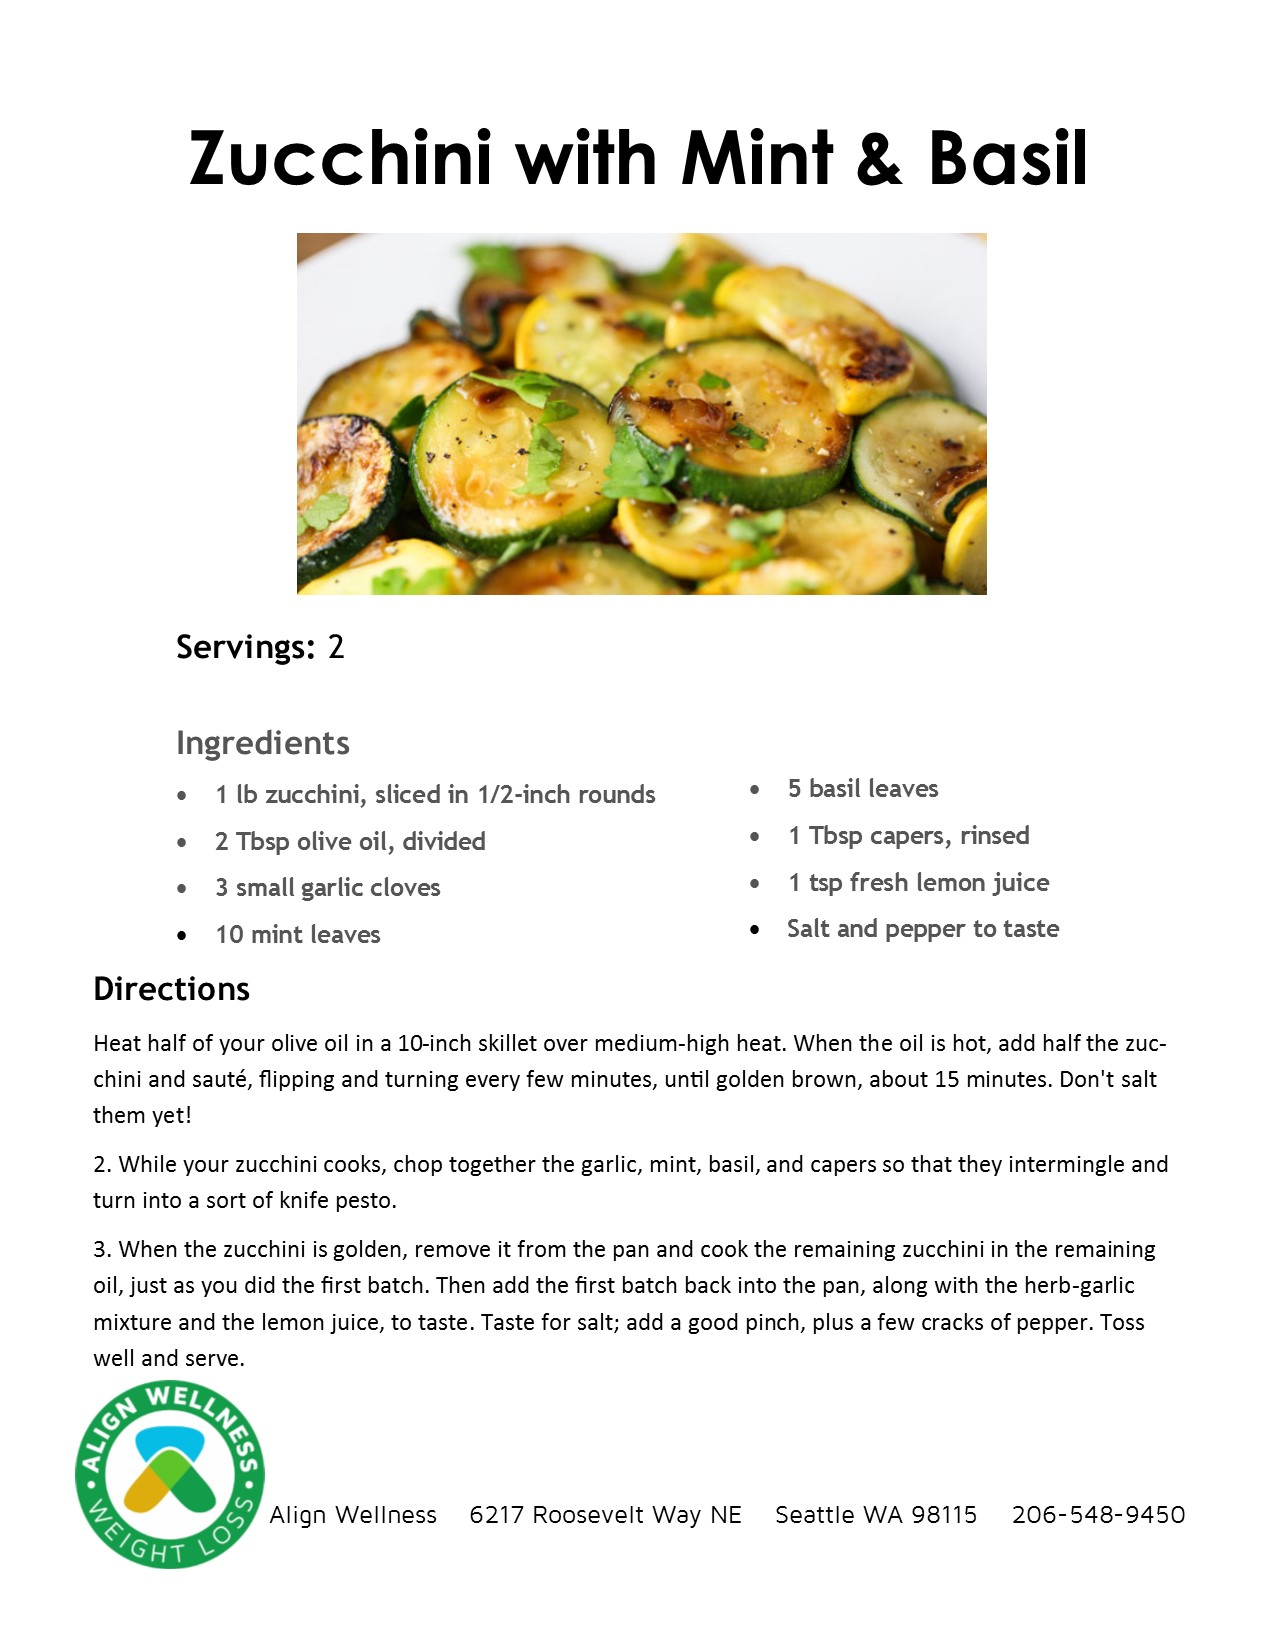 Zucchini with Mint and Basil Ideal Protein Recipe